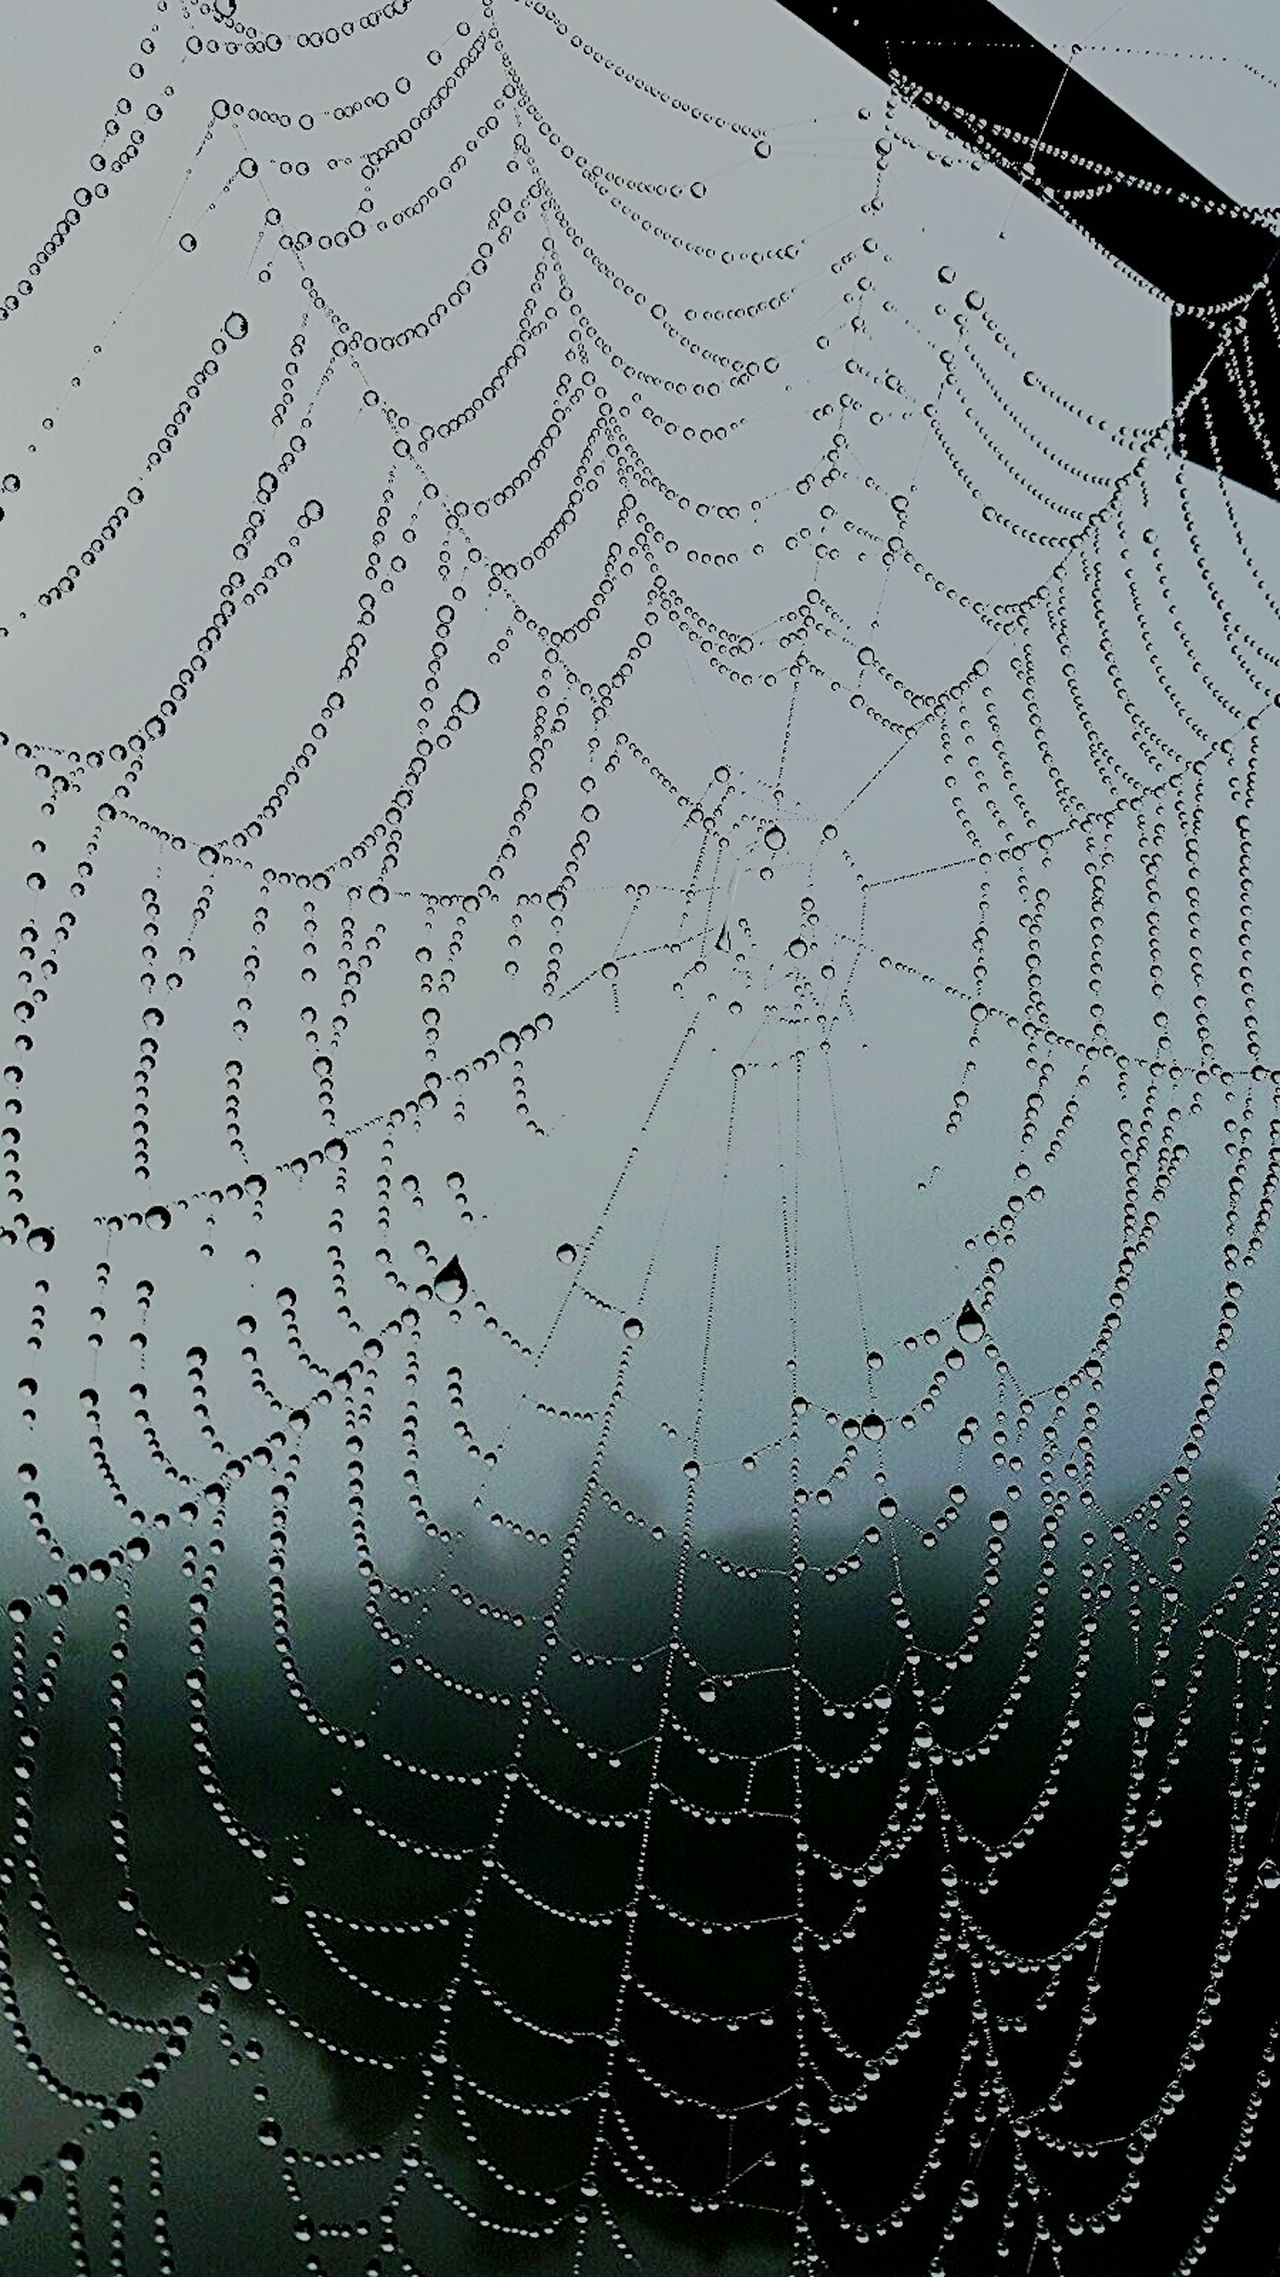 Web meets Water. Morning dew on the Silk Road.... Taking Photos Enjoying Life No Filters Or Effects Passionforphotography Lakelife Nature Is Art Eyeemphotography Lake Living Foggy Morning Dew Condensation Dewdrops_Beauty Spiderweb Spider Silk Spider Webs Spider Web Check This Out This Week On Eyeem Natural The Week On Eyem The Week Of Eyeem My Photography My Backyard My Backyard Oasis My Backyard